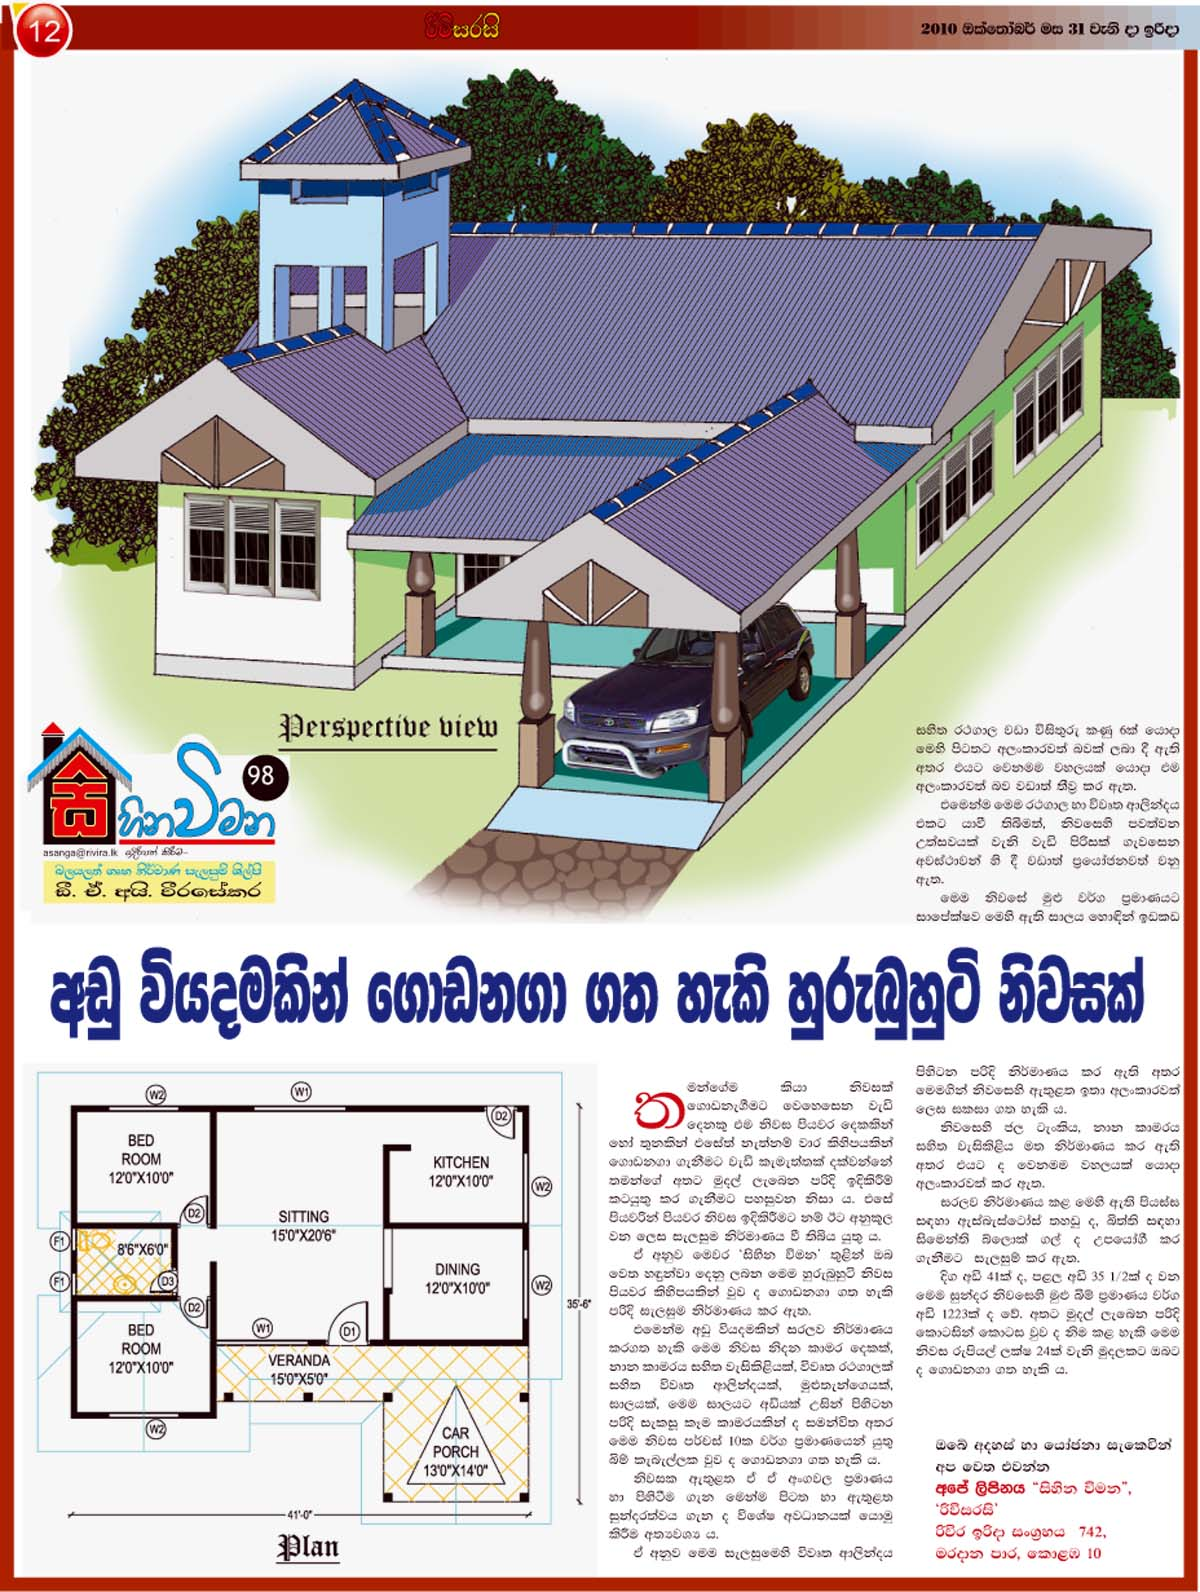 House Plans of Sri Lanka